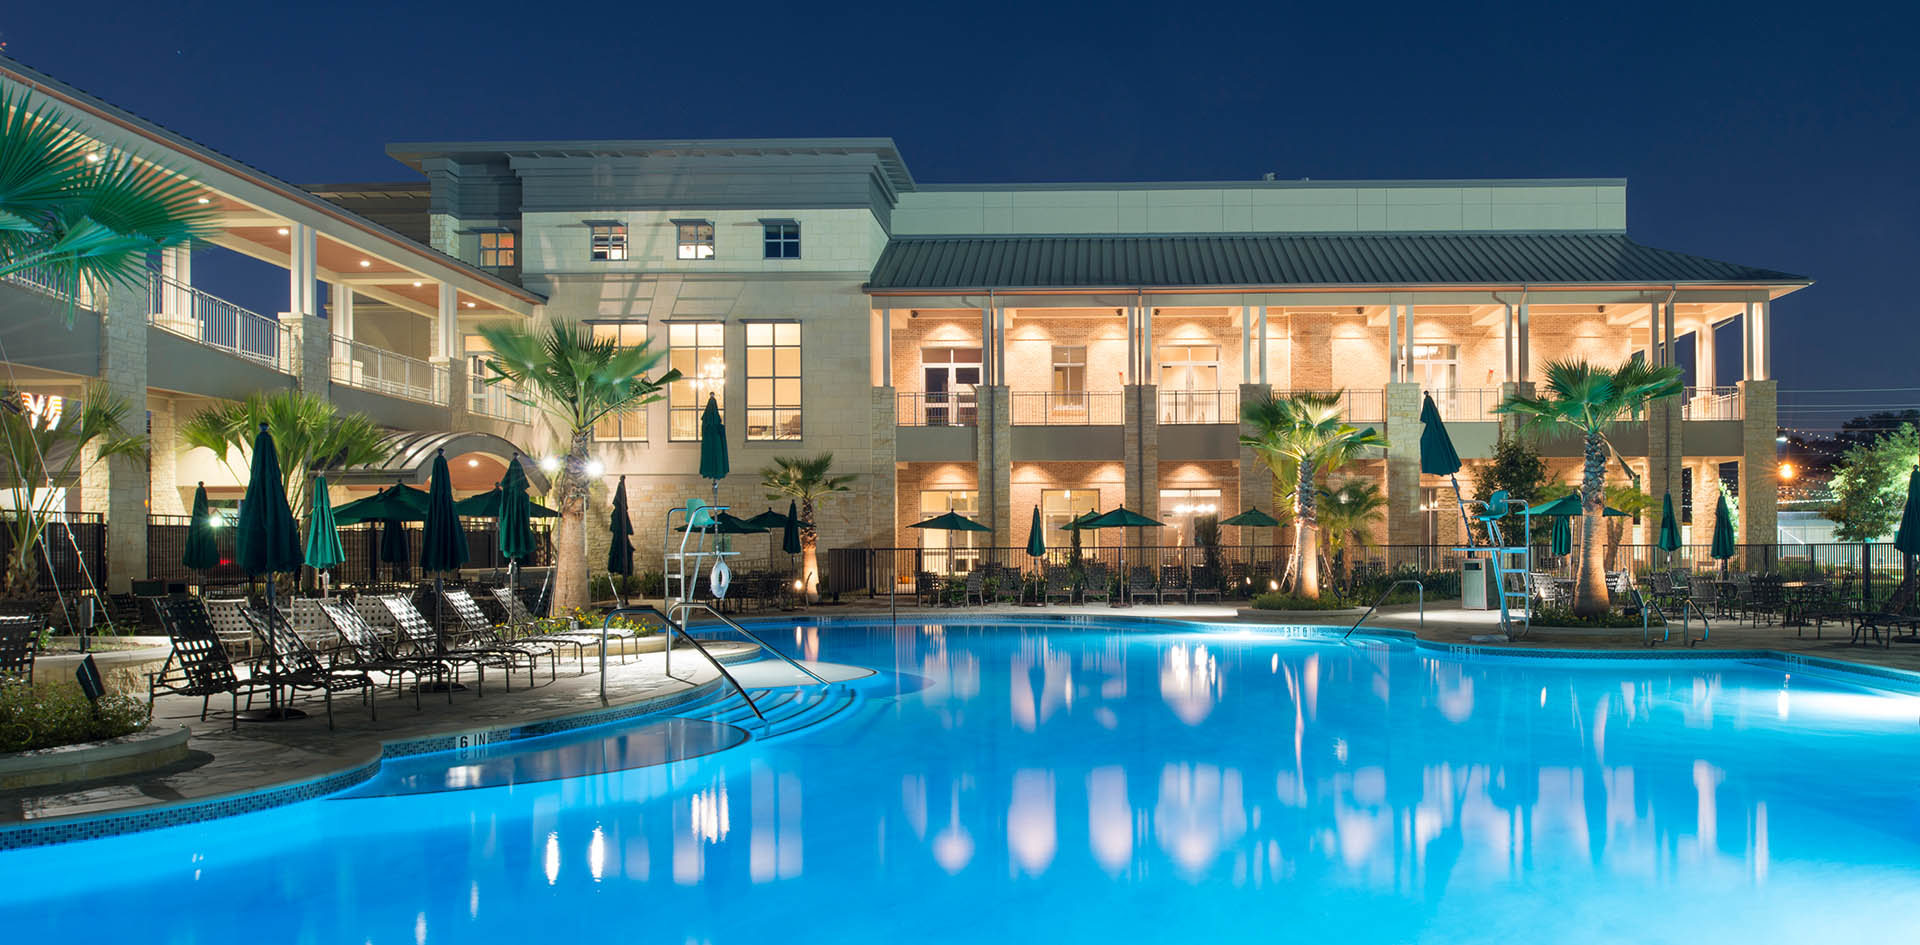 The Briar Club pool at night 2